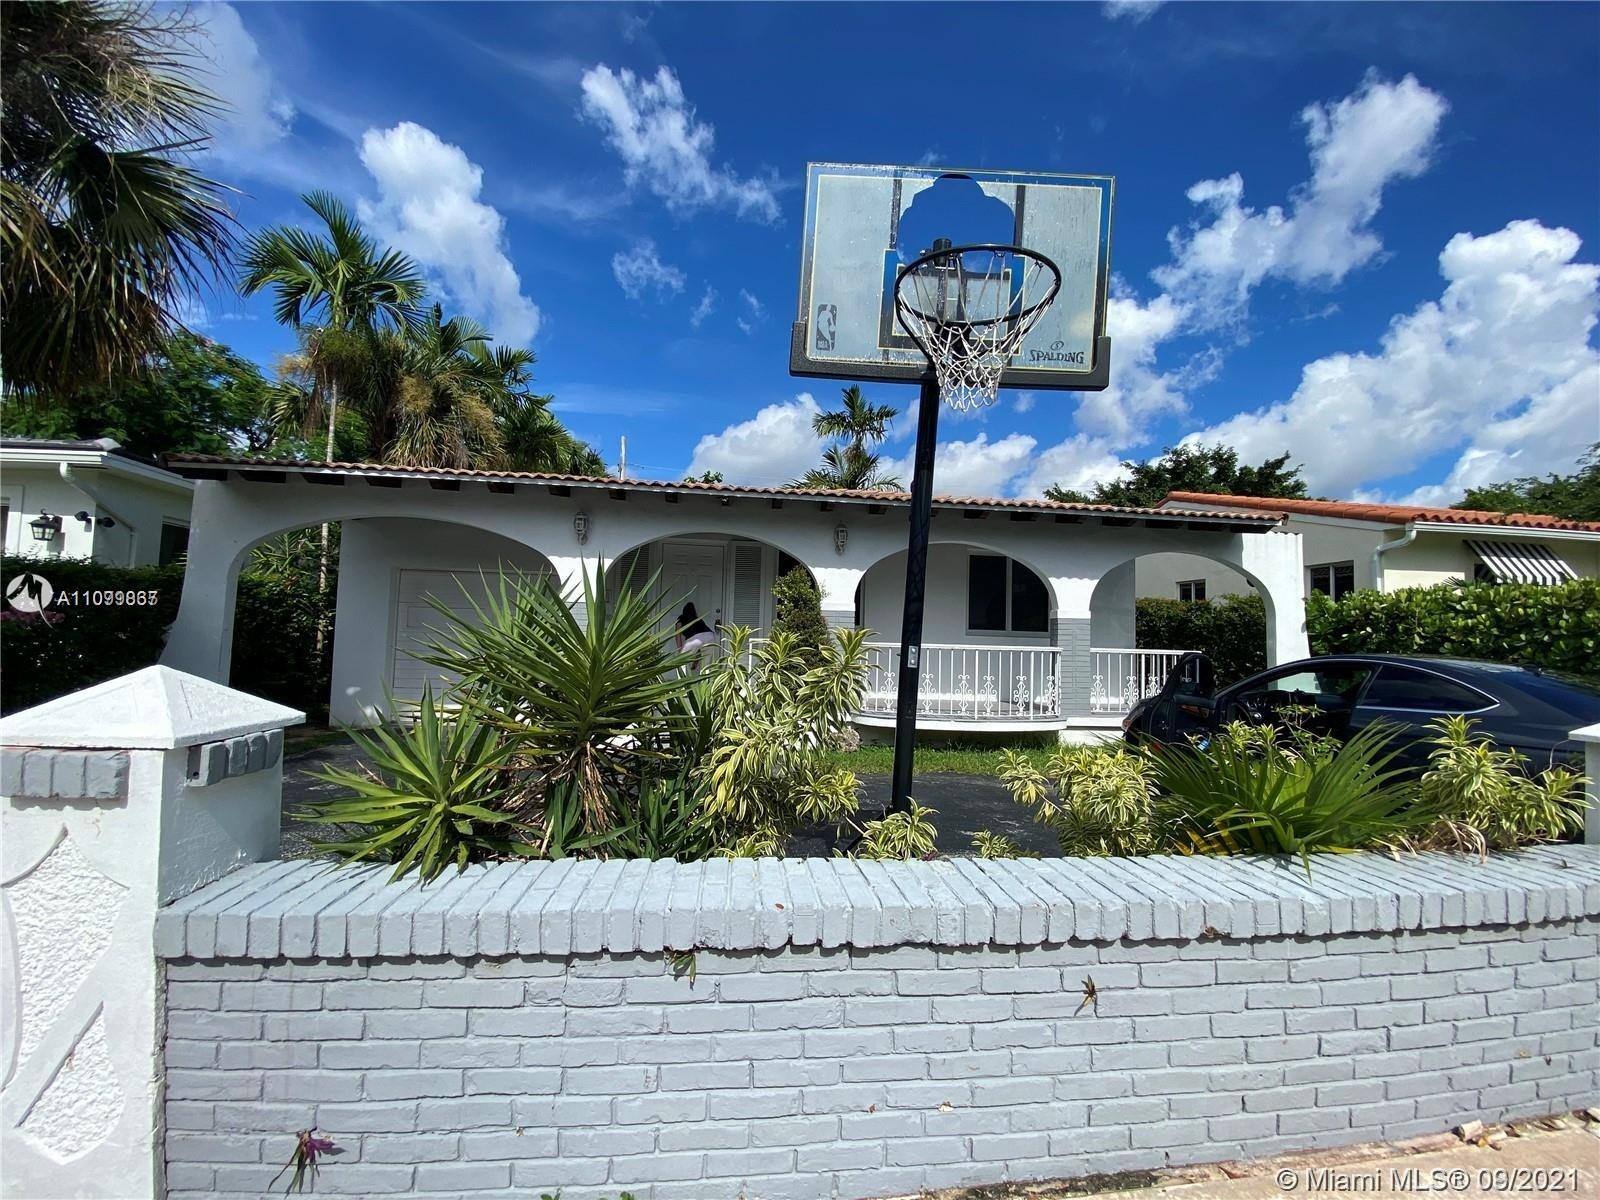 THIS IS A BEATIFULL HOME IN CORAL GABLES ON PRIVATE STREET WITH THREE BEDROOMS AND 2 FULLBATHS, THE PROPERTY HAS A NICE KITCHEN WITH STAINLESS STELL APPLIANCES. WITH FAMILY ROOM, LARGE MASTER WITH BATH, DINING ROOM, CAR GARAGE ATTACHED FOR 1 CAR AND SPACE FOR 3 CARS MOR IN DRIVEWAY. NICE BACKYARD FOR PETS AND BBQ.